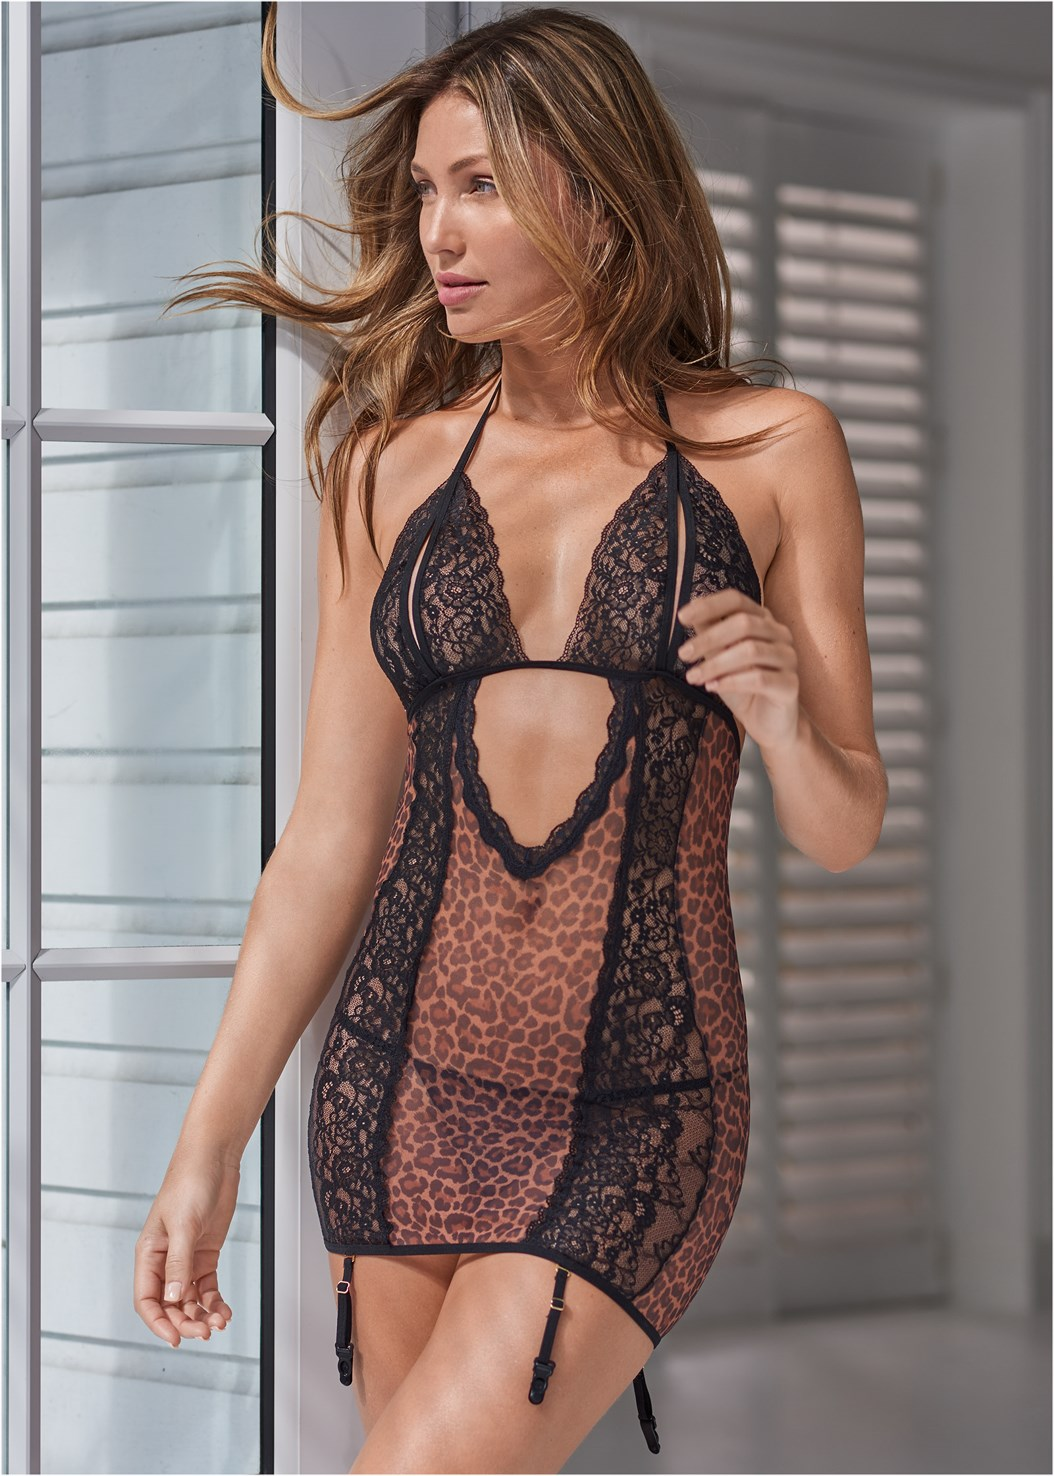 Animal Print Chemise,Cut Out Animal Print Bodysuit